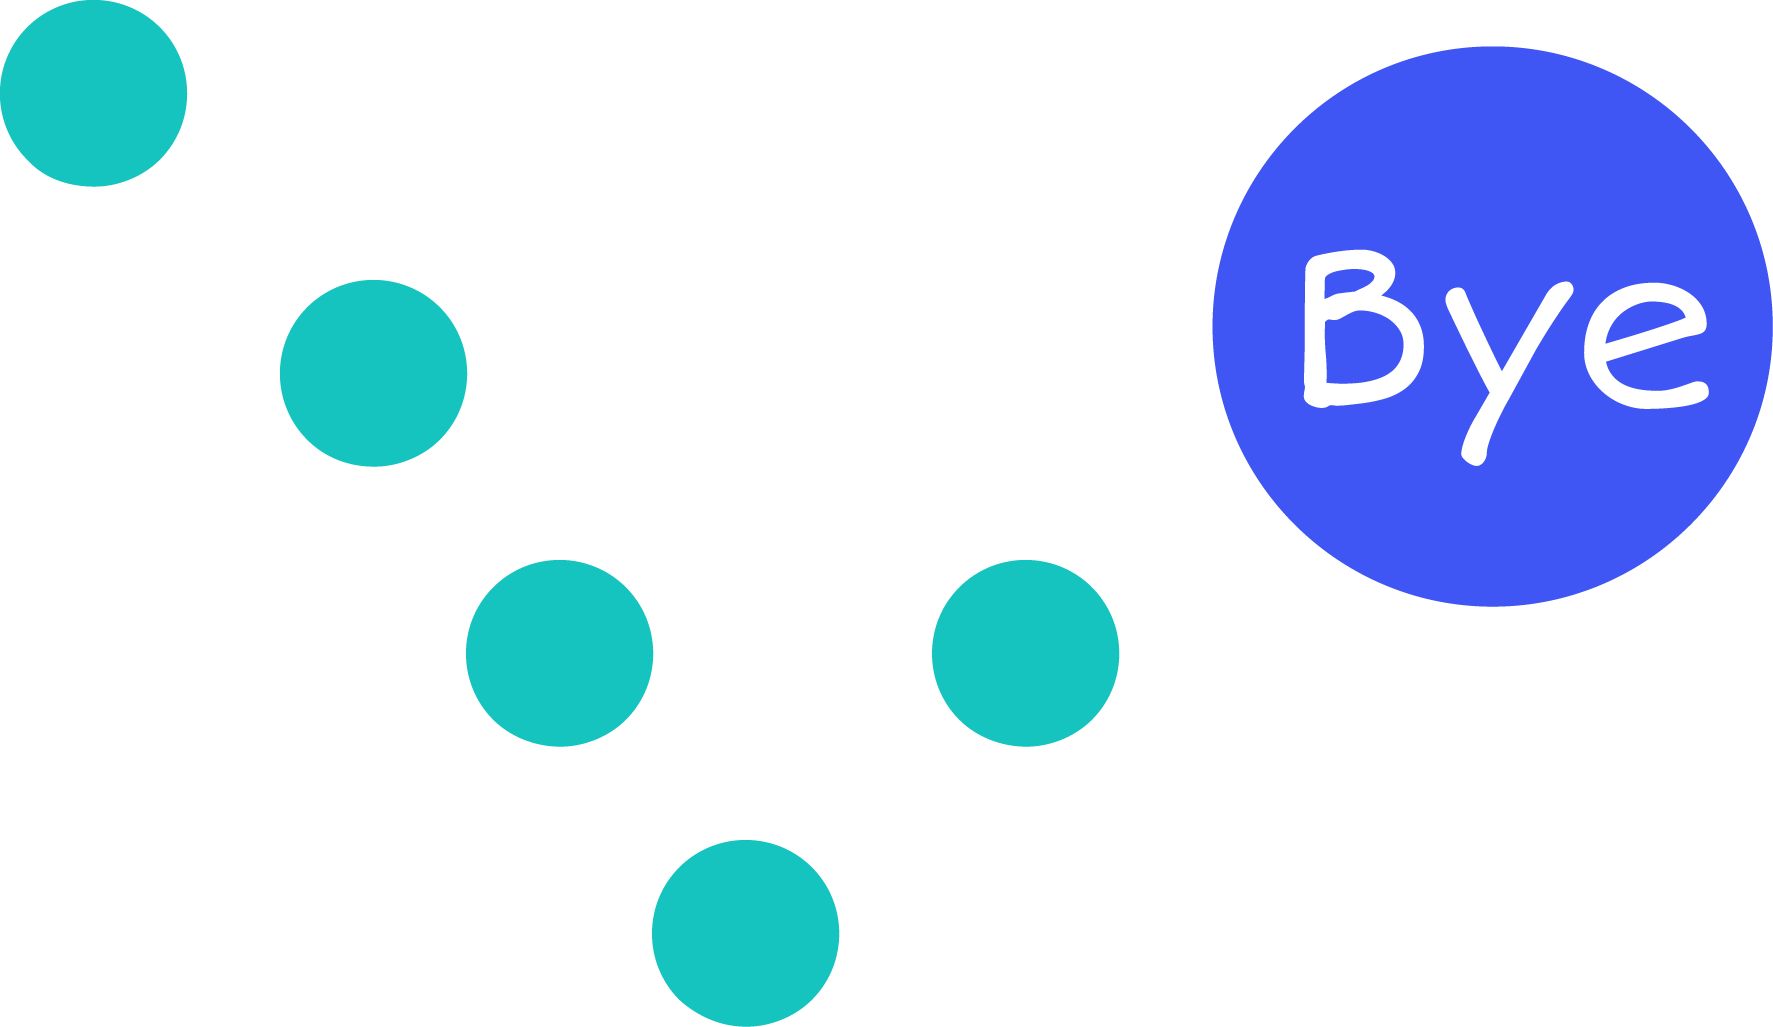 Bouncing dot bye illustration